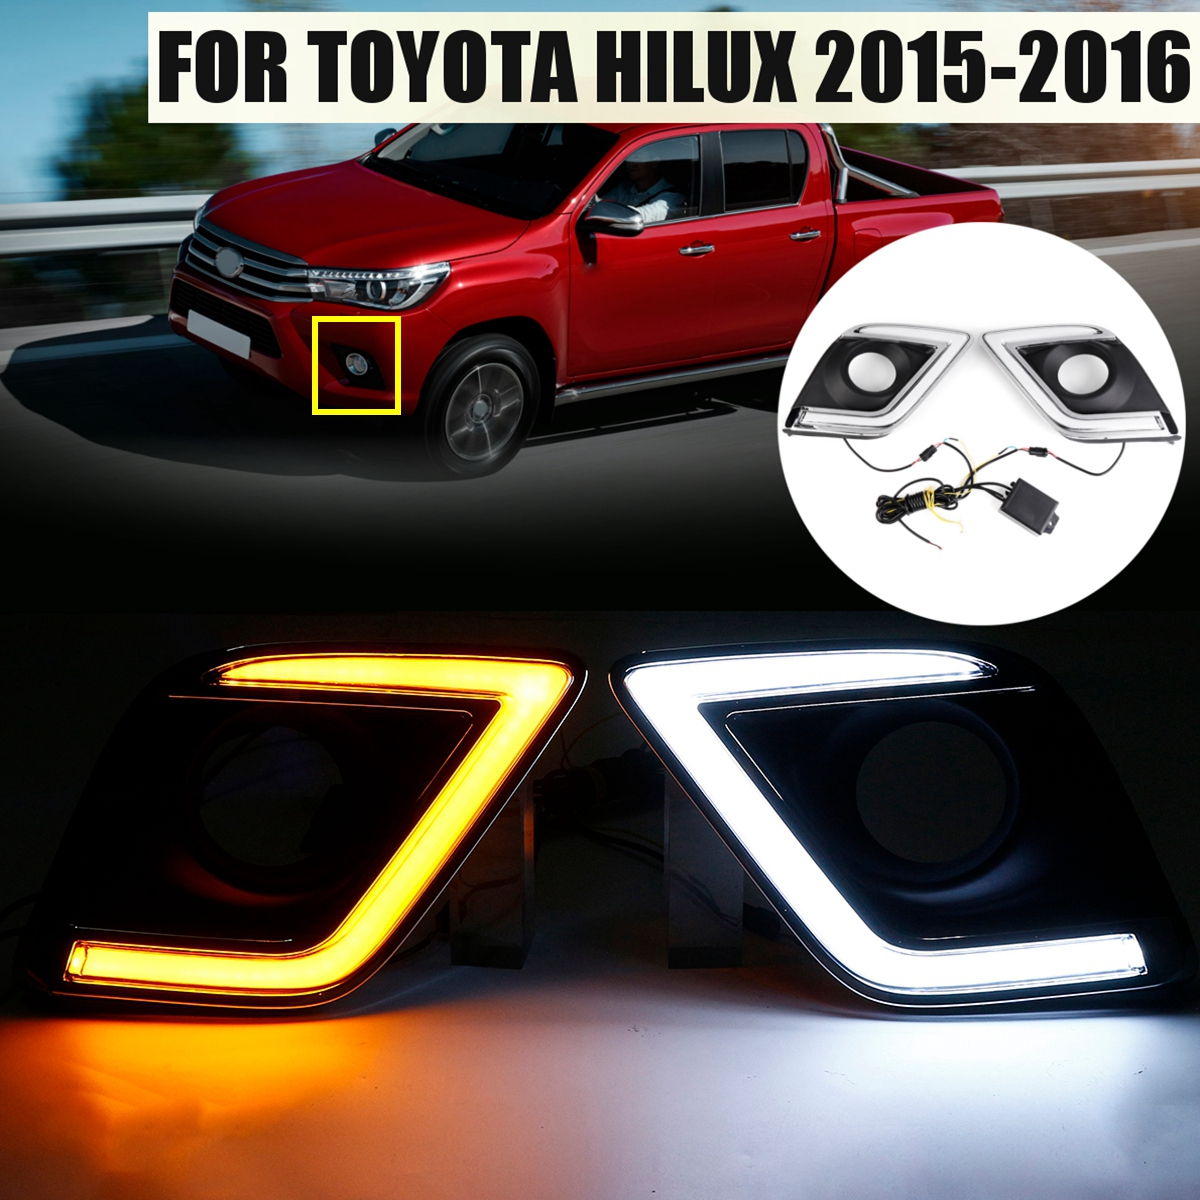 For Toyota Hilux Revo 2015-2016 1 Pair Car LED DRL Daytime Running Lights Turn Signal Lamp DRL fog lamp cover with turn signal revo fog lamp waterproof led car drl daytime running lights accessories for toyota hilux vigo champ 2015 2016 year